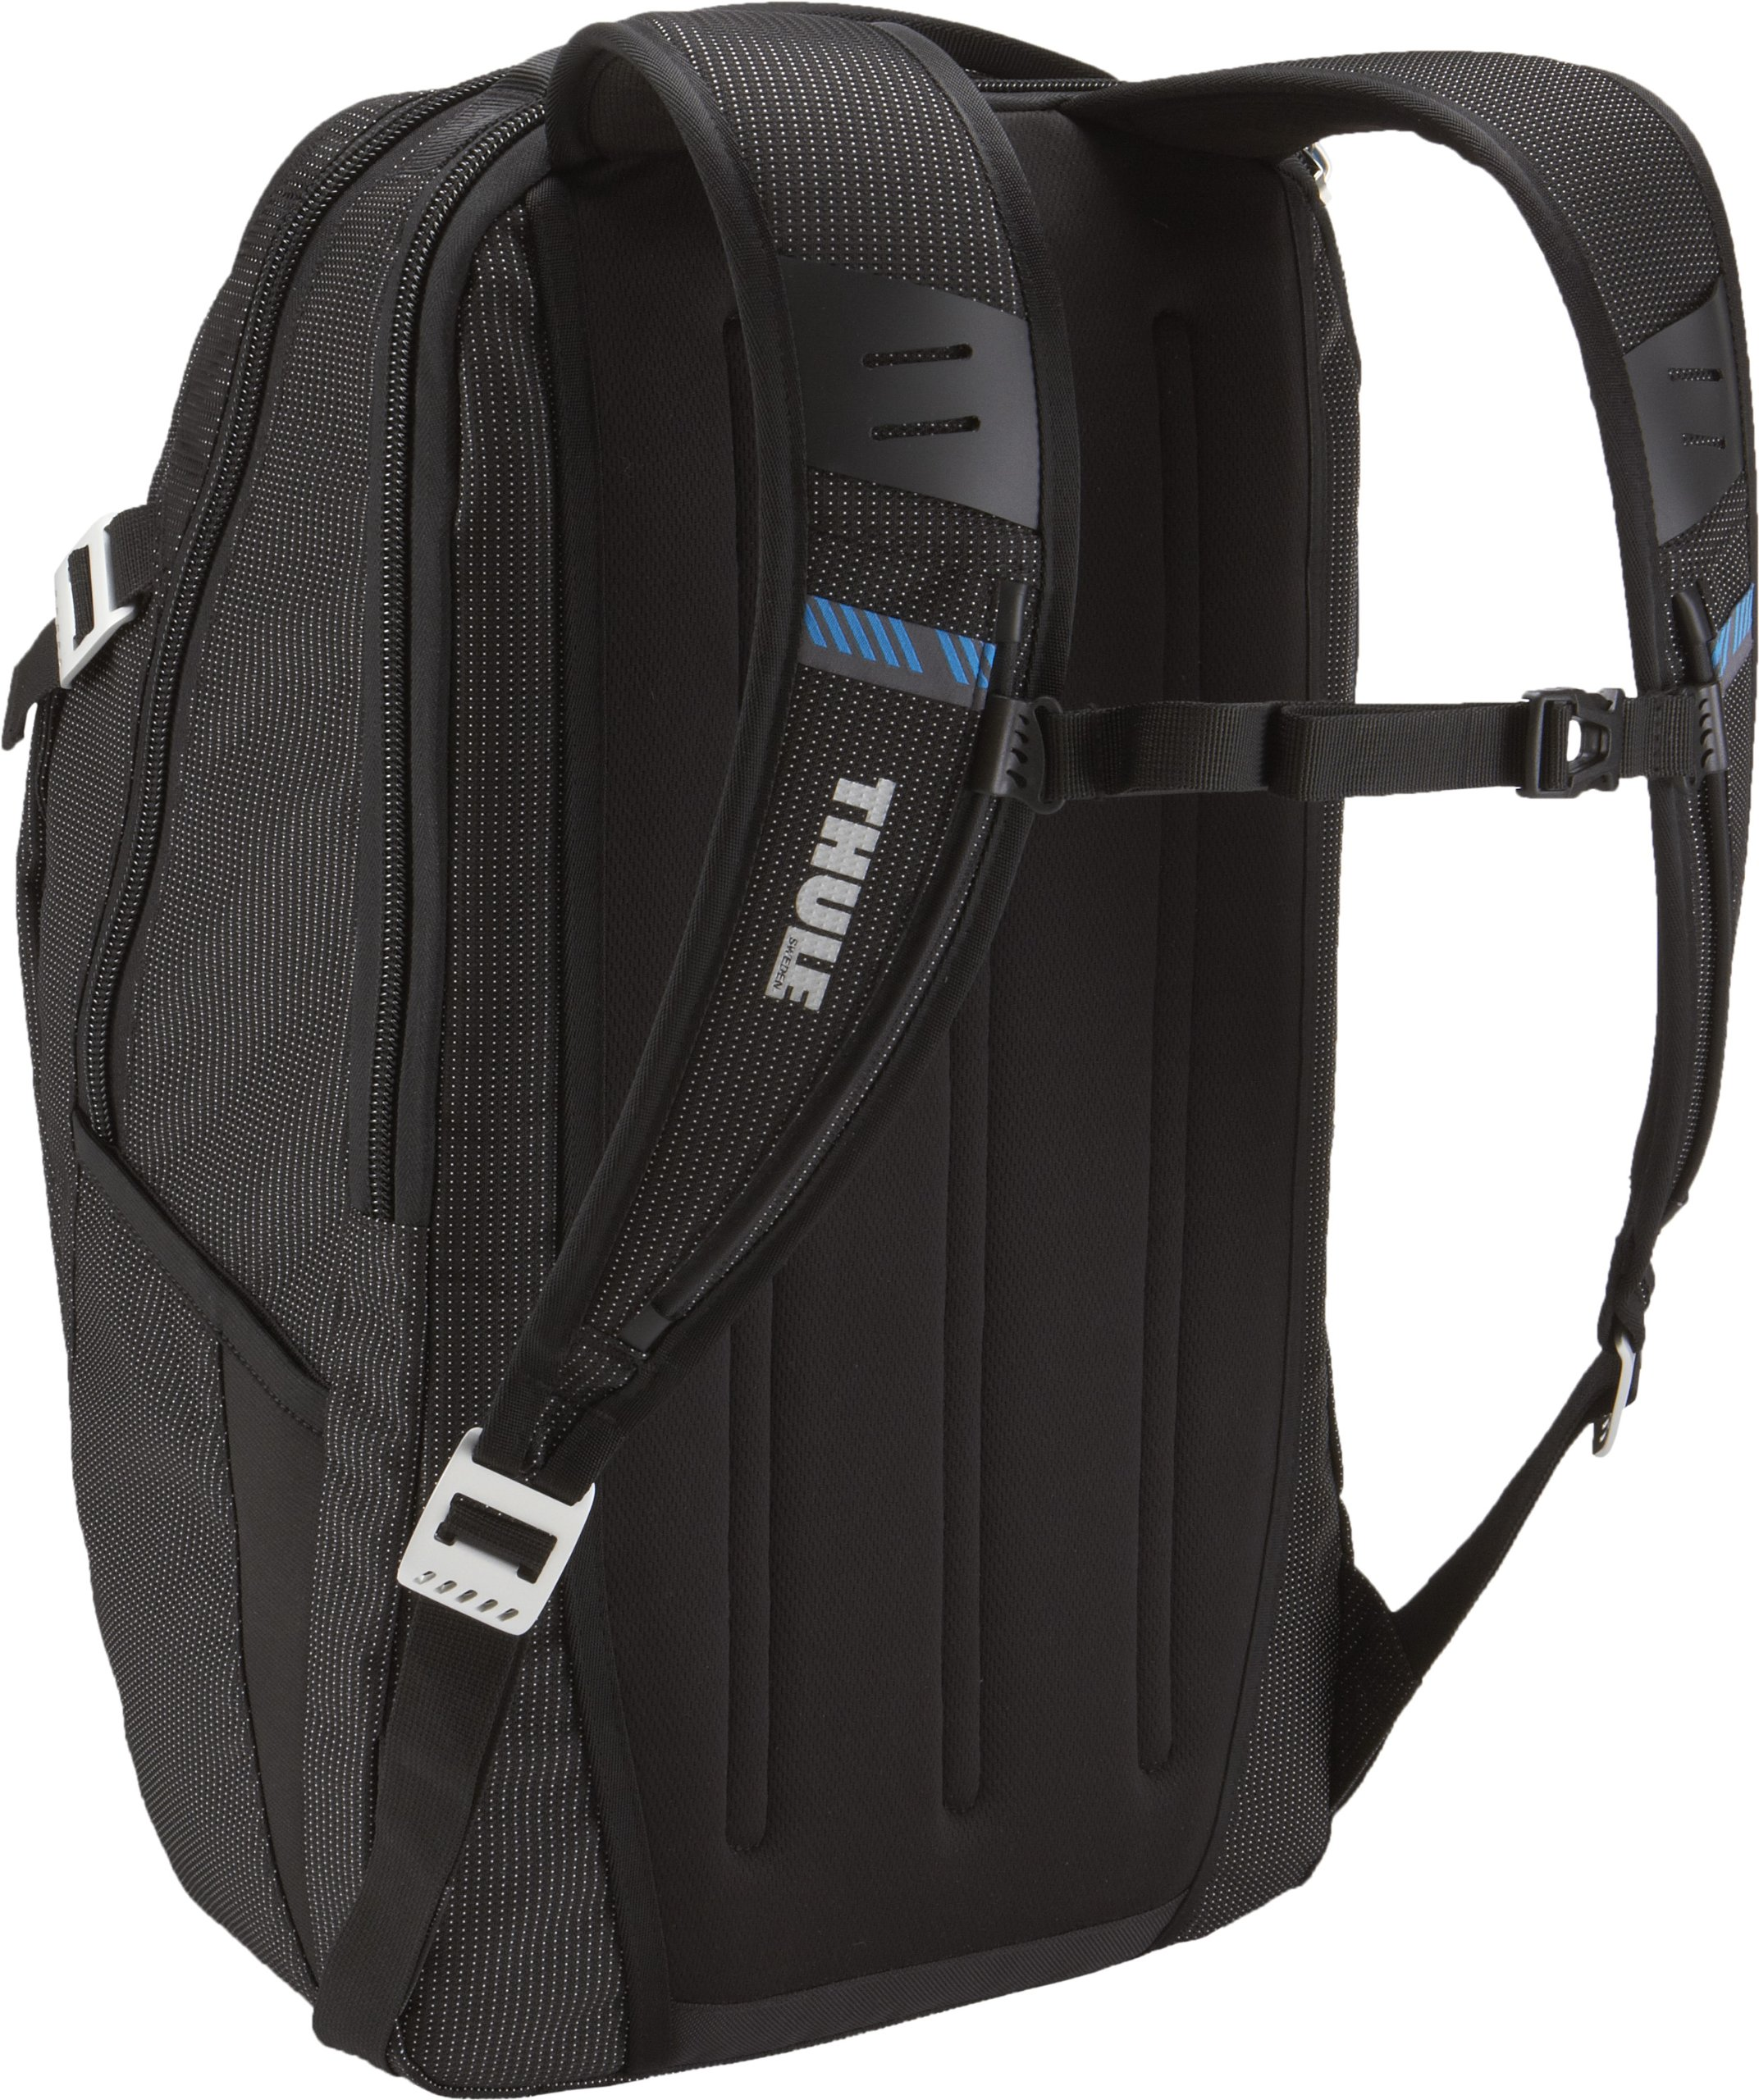 Thule Crossover 32L Backpack - Black by Thule (Image #2)